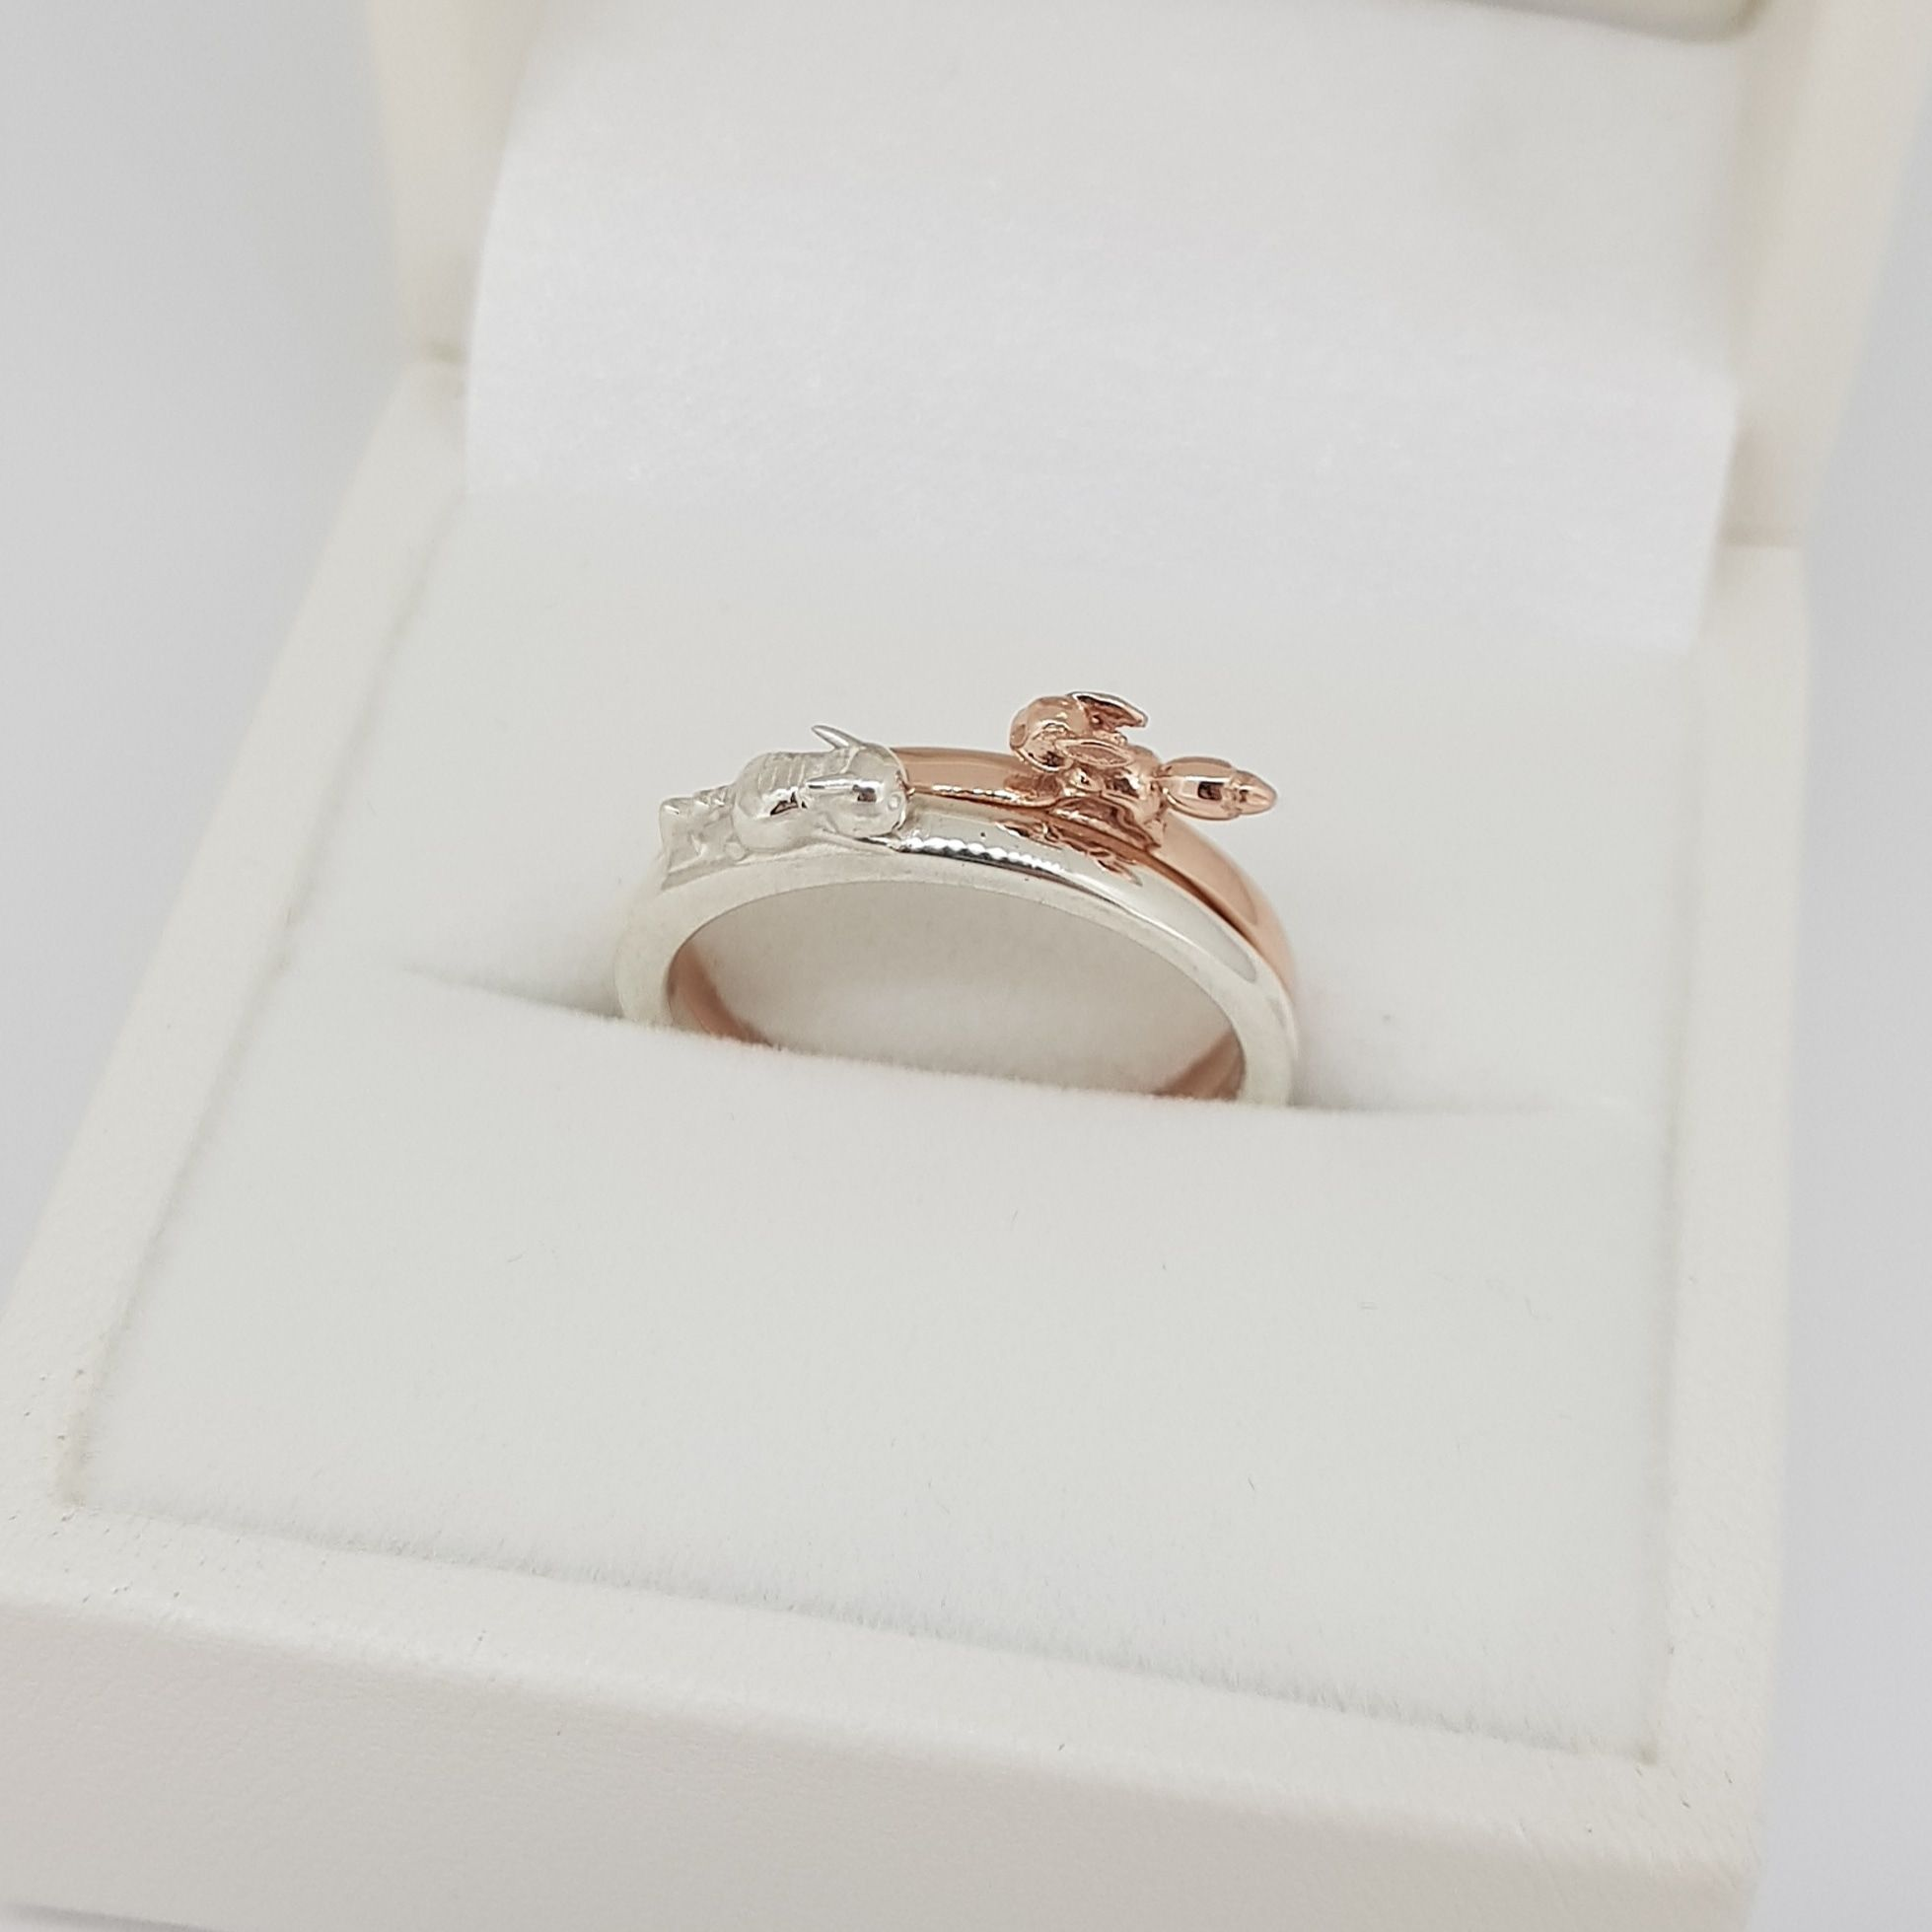 White Gold Pikachu Ring With Matching Rose Gold Eevee Ring That Dad And I Made Pokemon Jewelry White Gold Jewelry